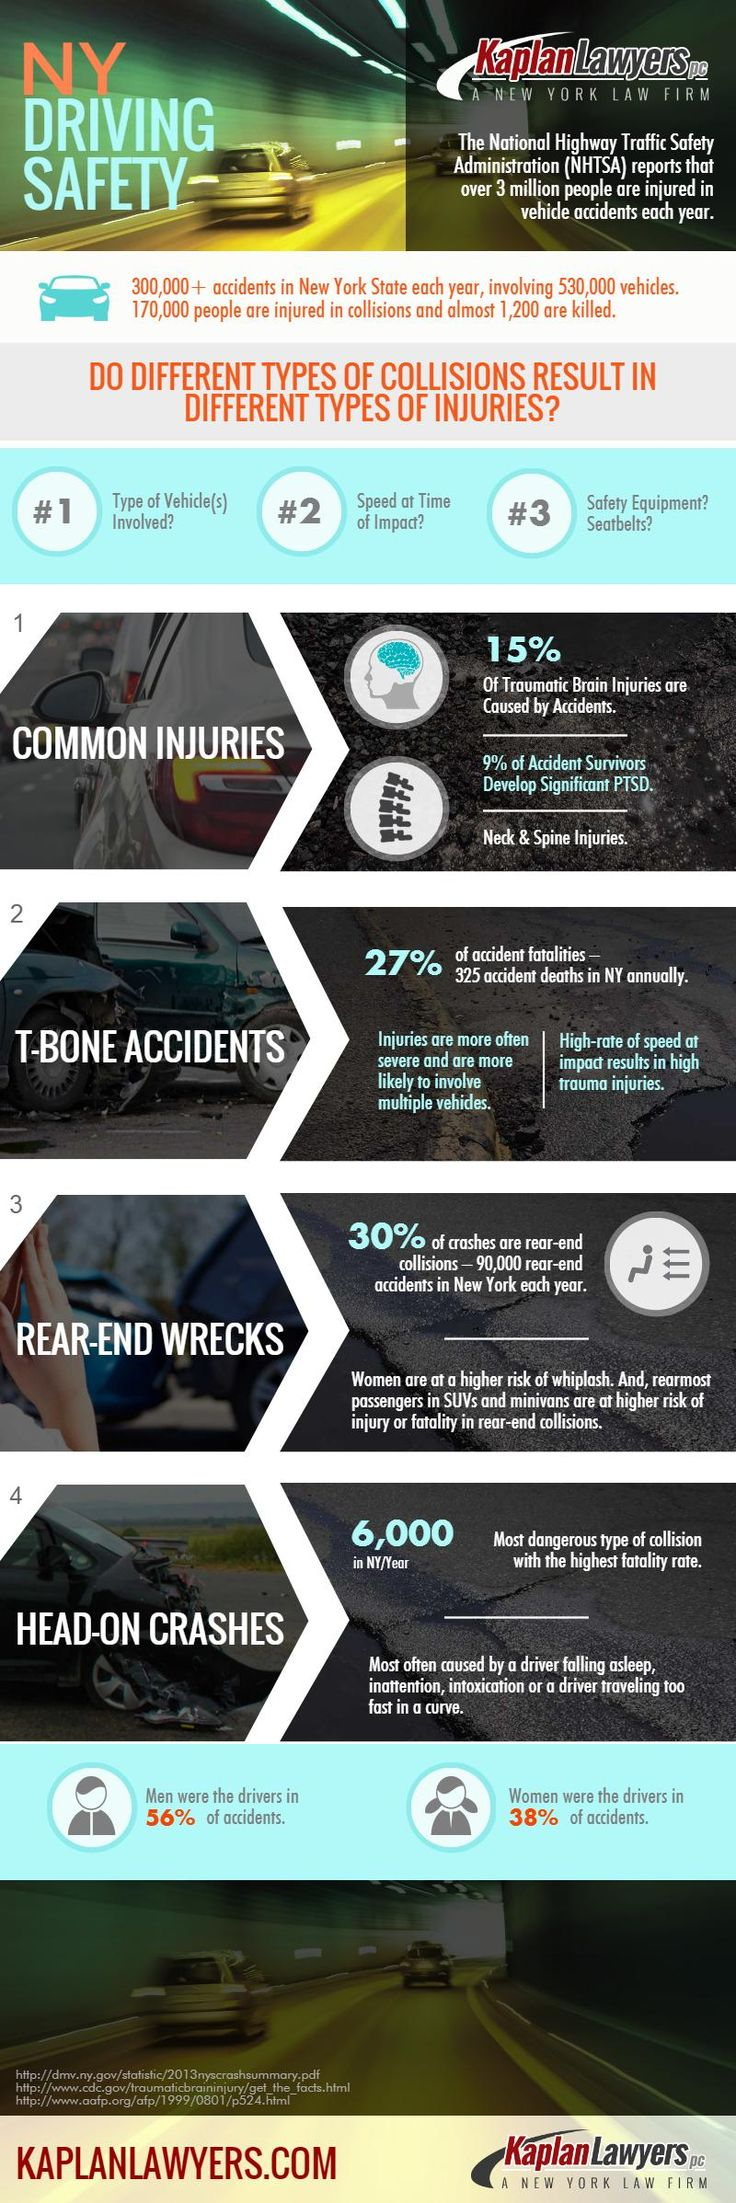 What Are The Most Common Types of Injuries Resulting From Vehicle Accidents?